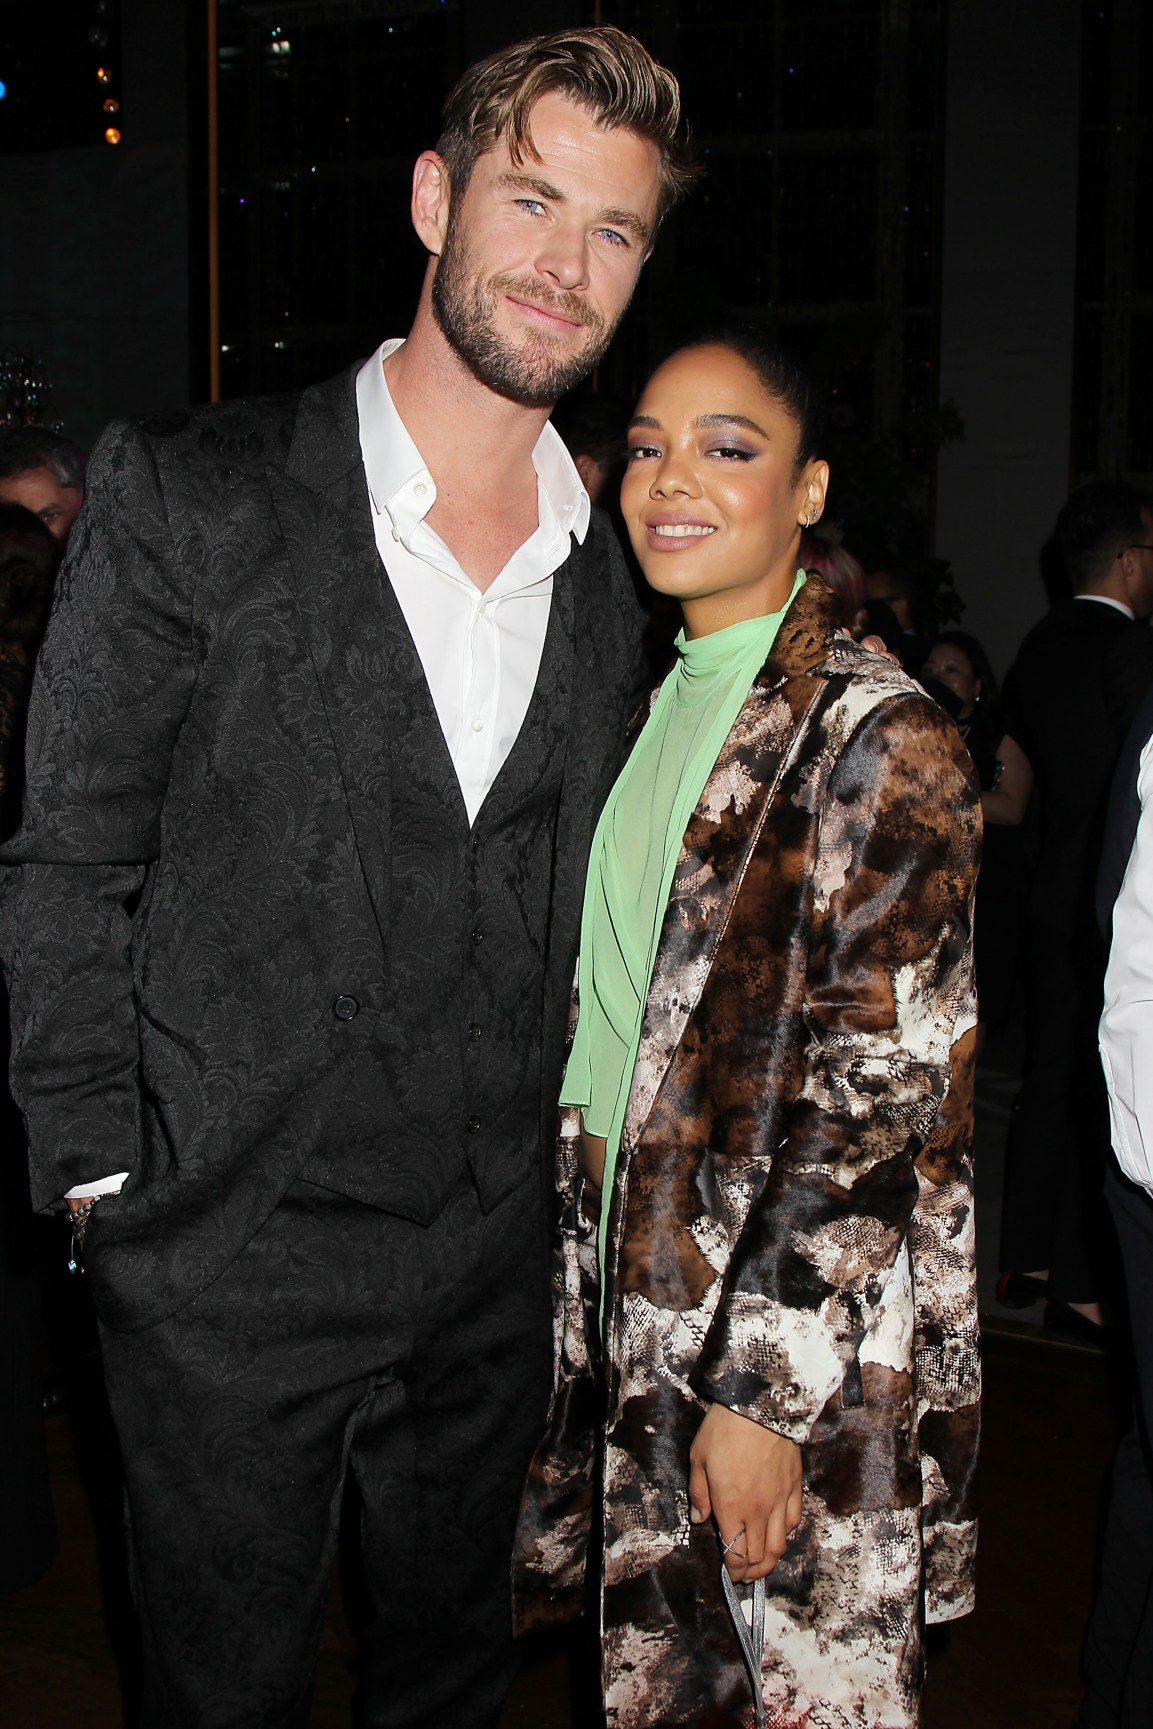 "- New York, NY - 6/11/19 - The World Premiere of Columbia Pictures ""Men In Black: International"" - After Party -Pictured: Chris Hemsworth, Tessa Thompson -Photo by: Dave Allocca/Starpix -Location: Rainbow Room"